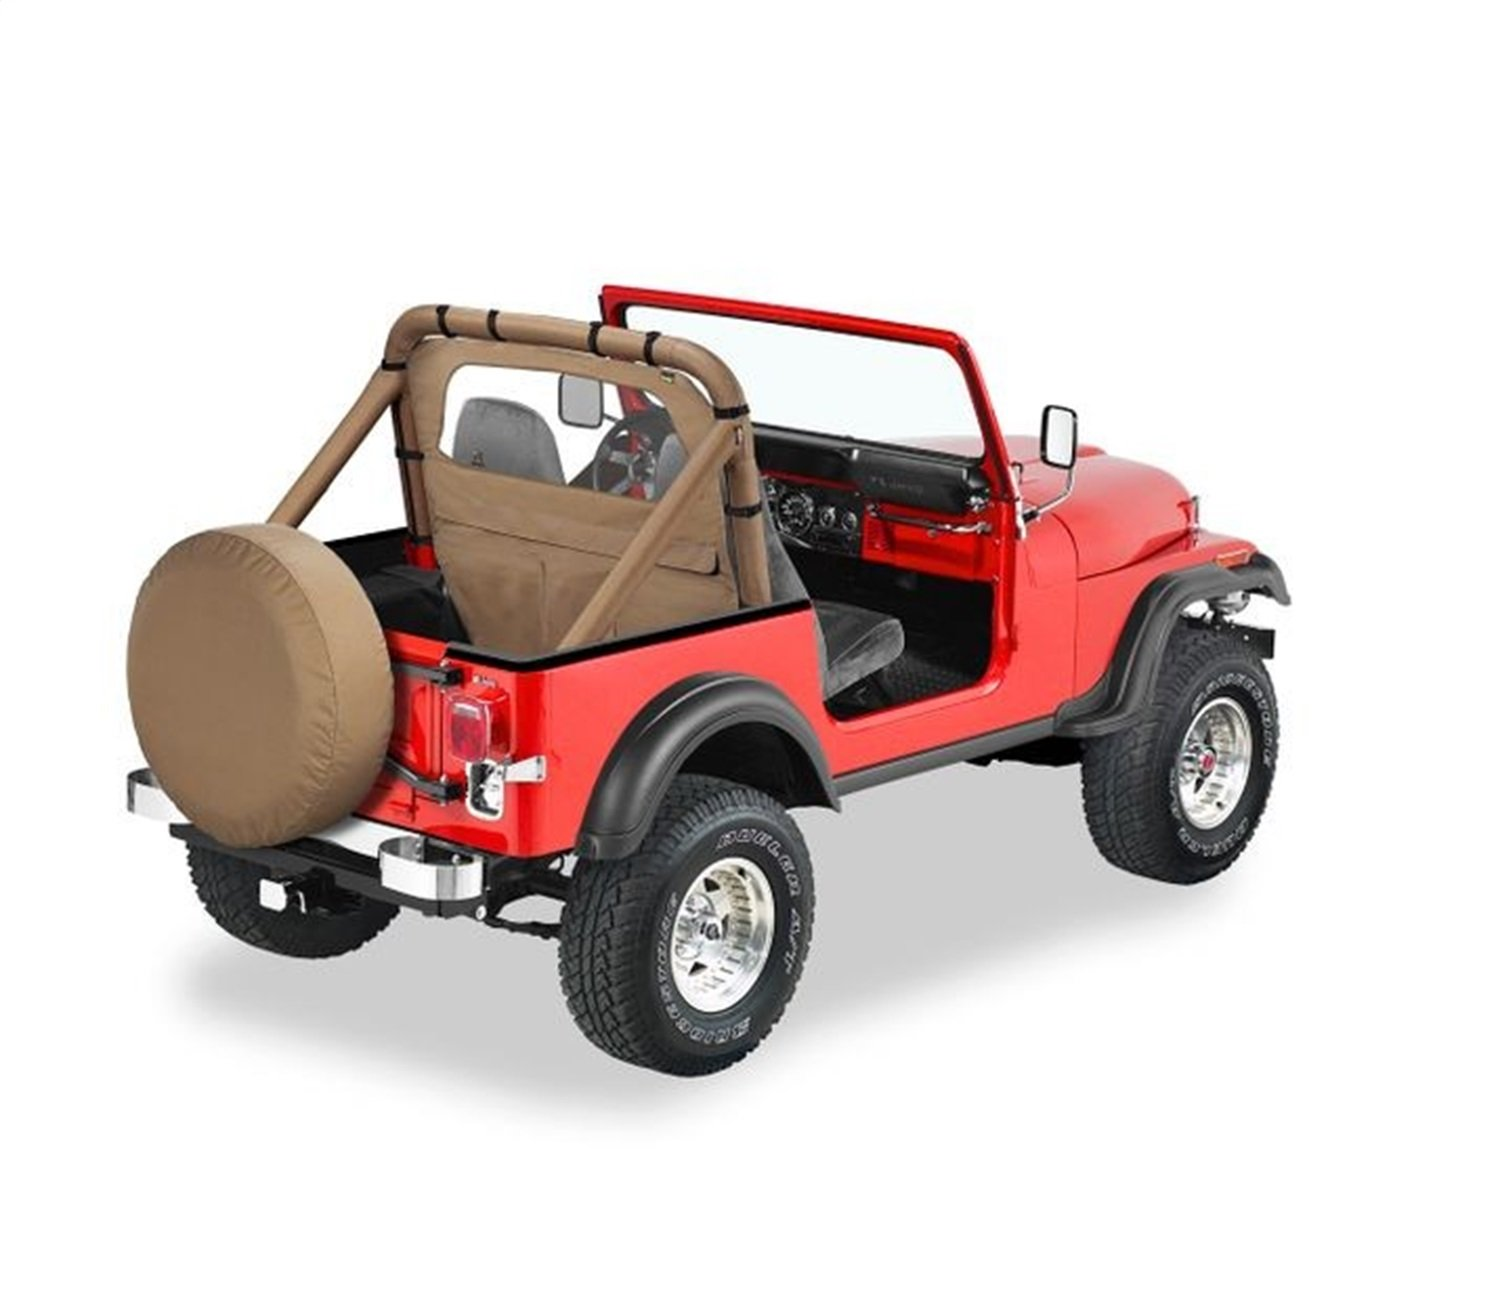 Amazon.com: Bestop 80028-37 Spice Windjammer Wind Break for 1980-1995 CJ-5,  CJ-7 & Wrangler: Automotive